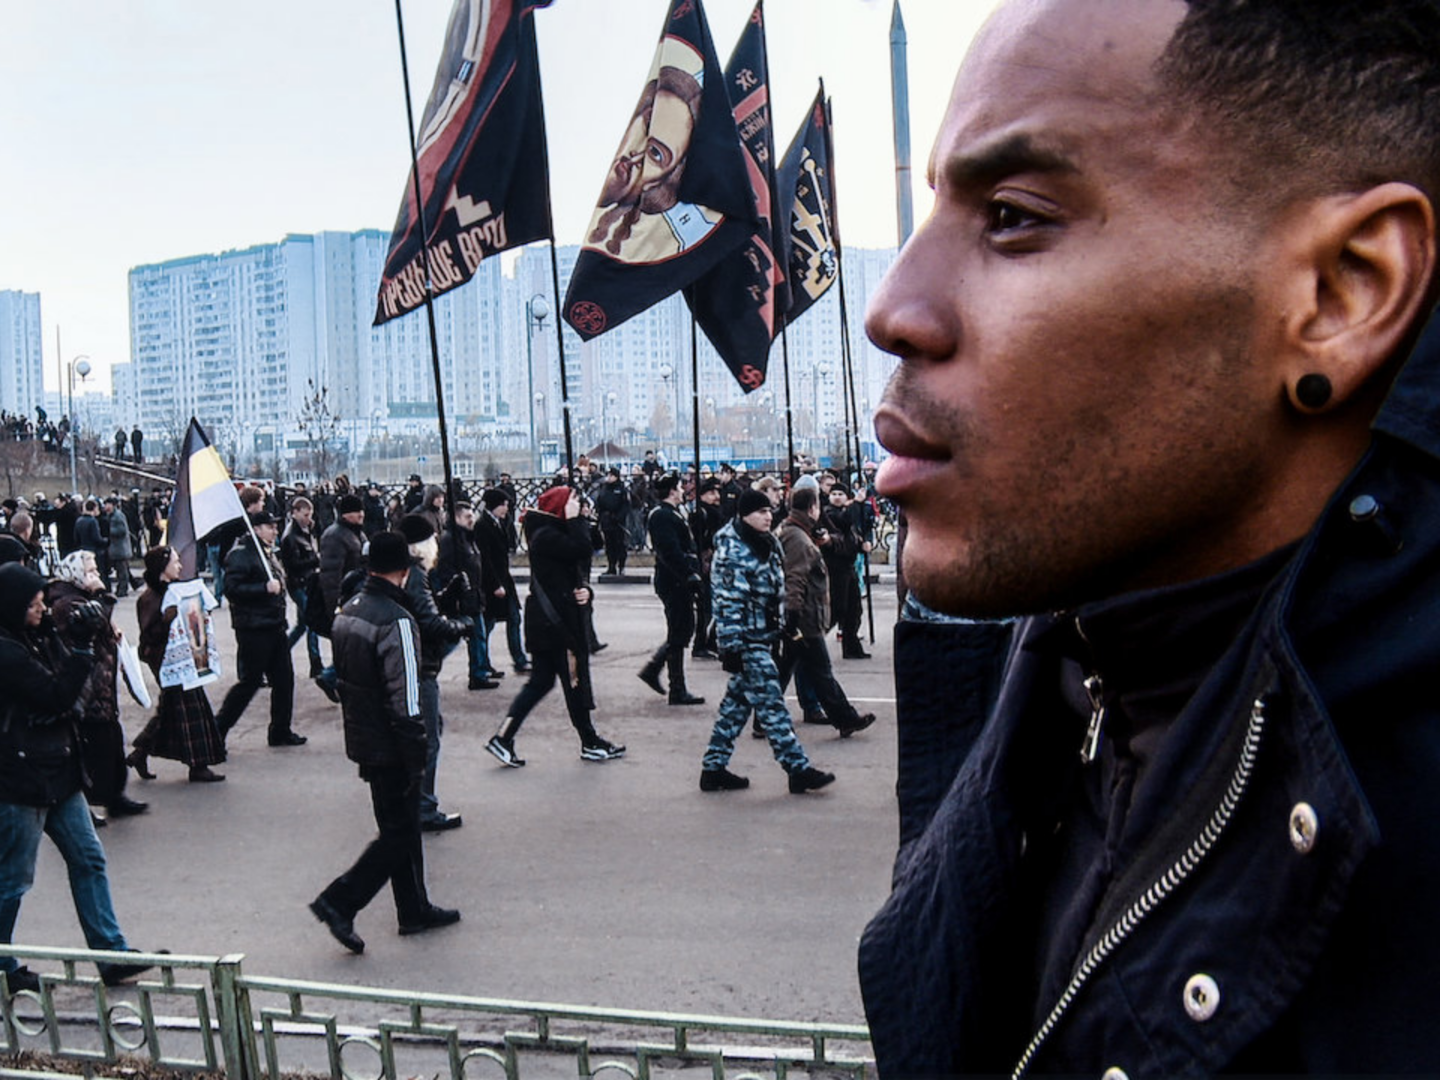 Documentaire aanrader: Reggie Yates Outside man